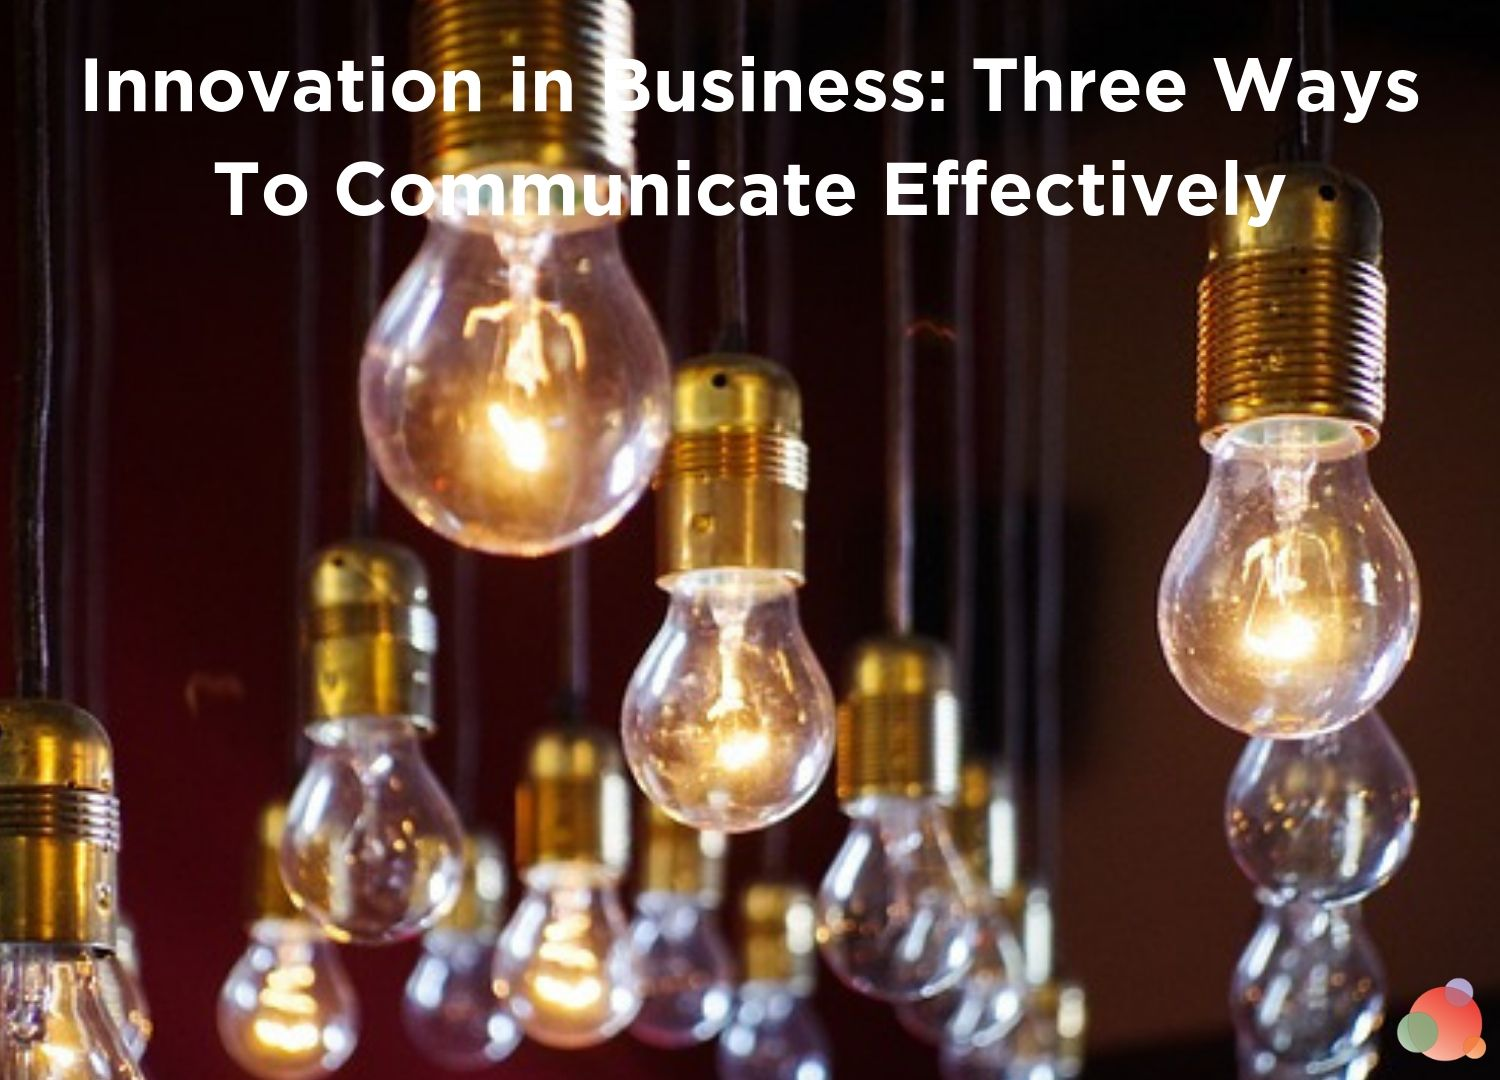 Innovation in Business: Three Ways To Communicate Effectively